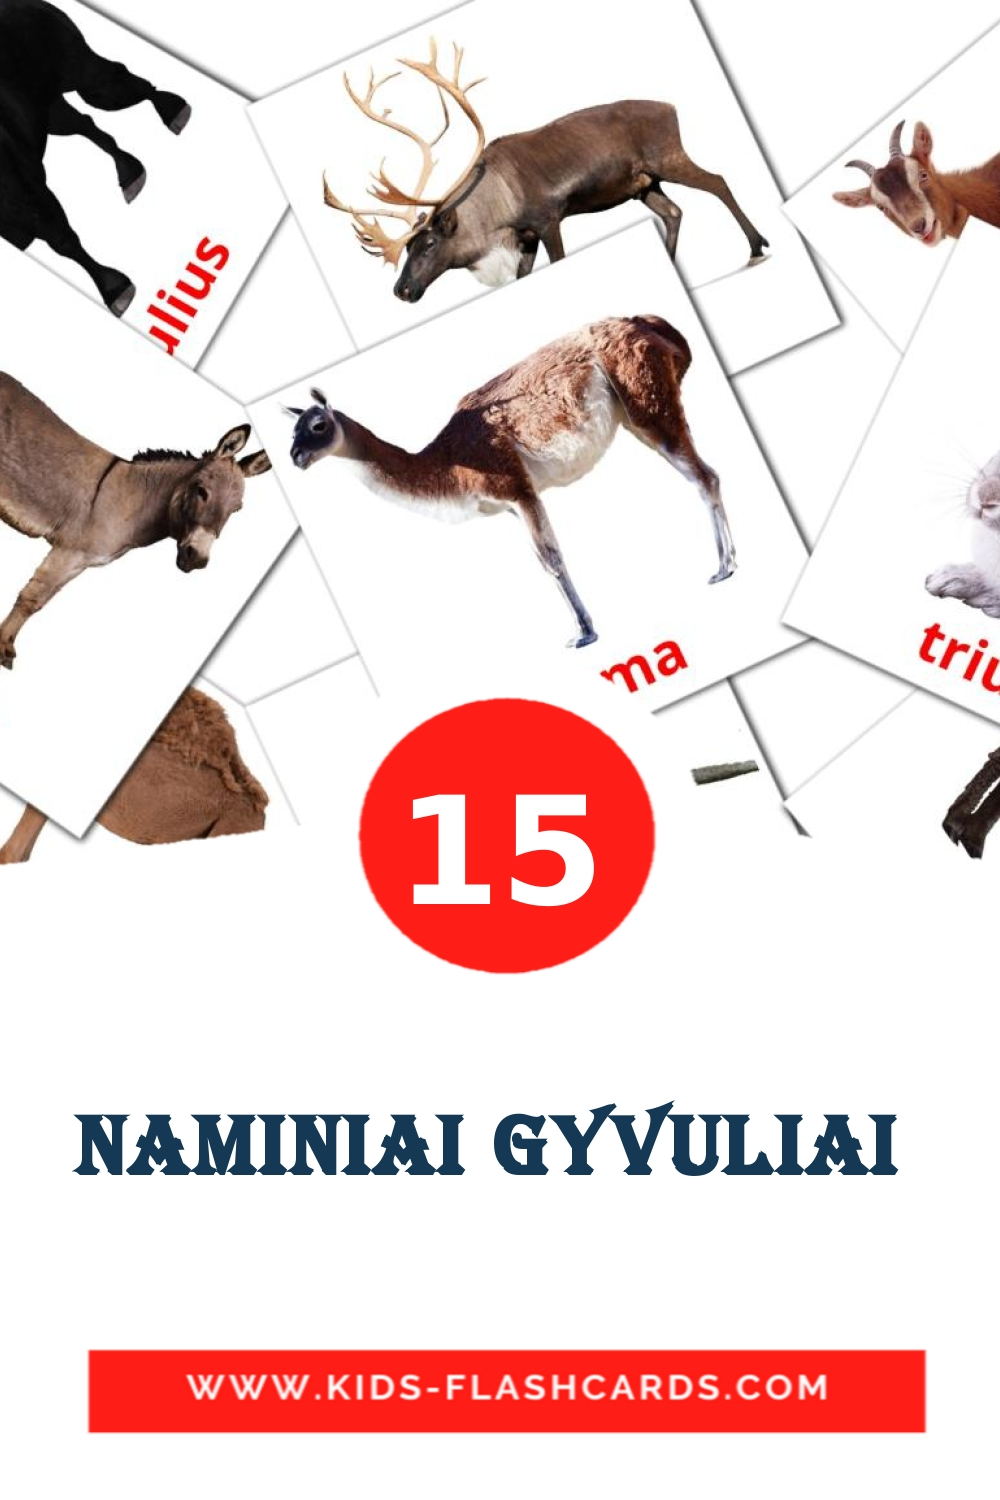 15 Naminiai gyvuliai  Picture Cards for Kindergarden in lithuanian